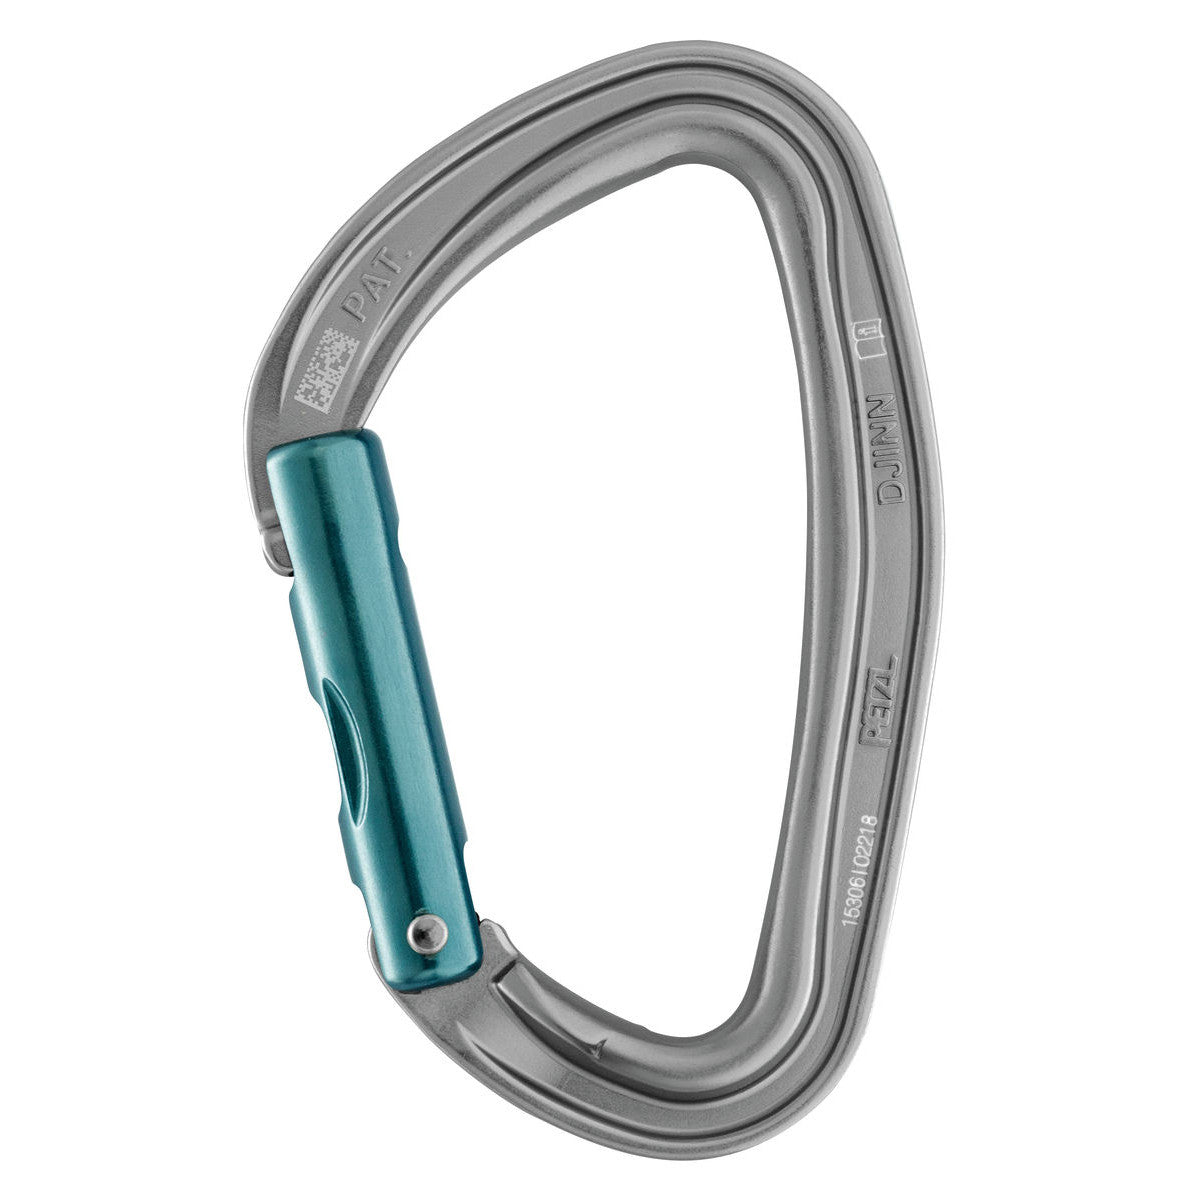 Petzl Djinn Carabiner in silver colour with blue gate